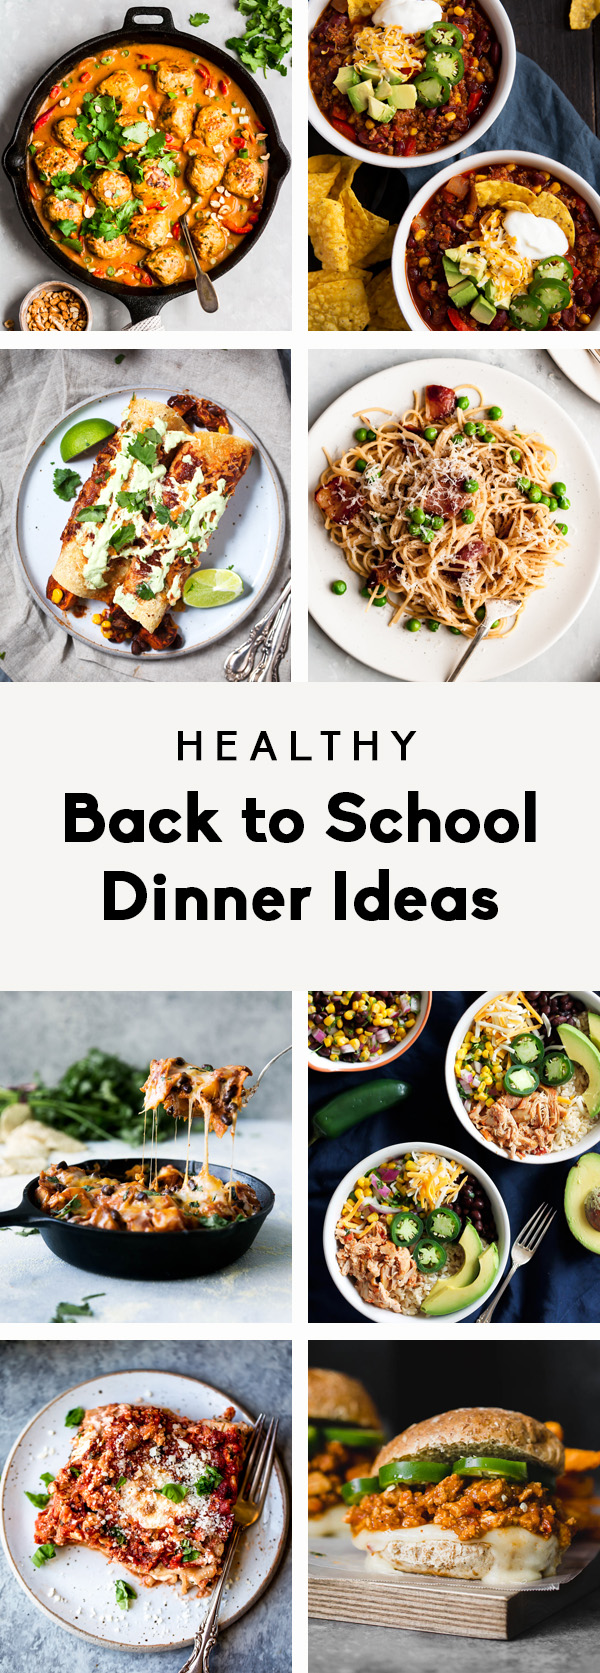 collage of healthy back to school dinner ideas